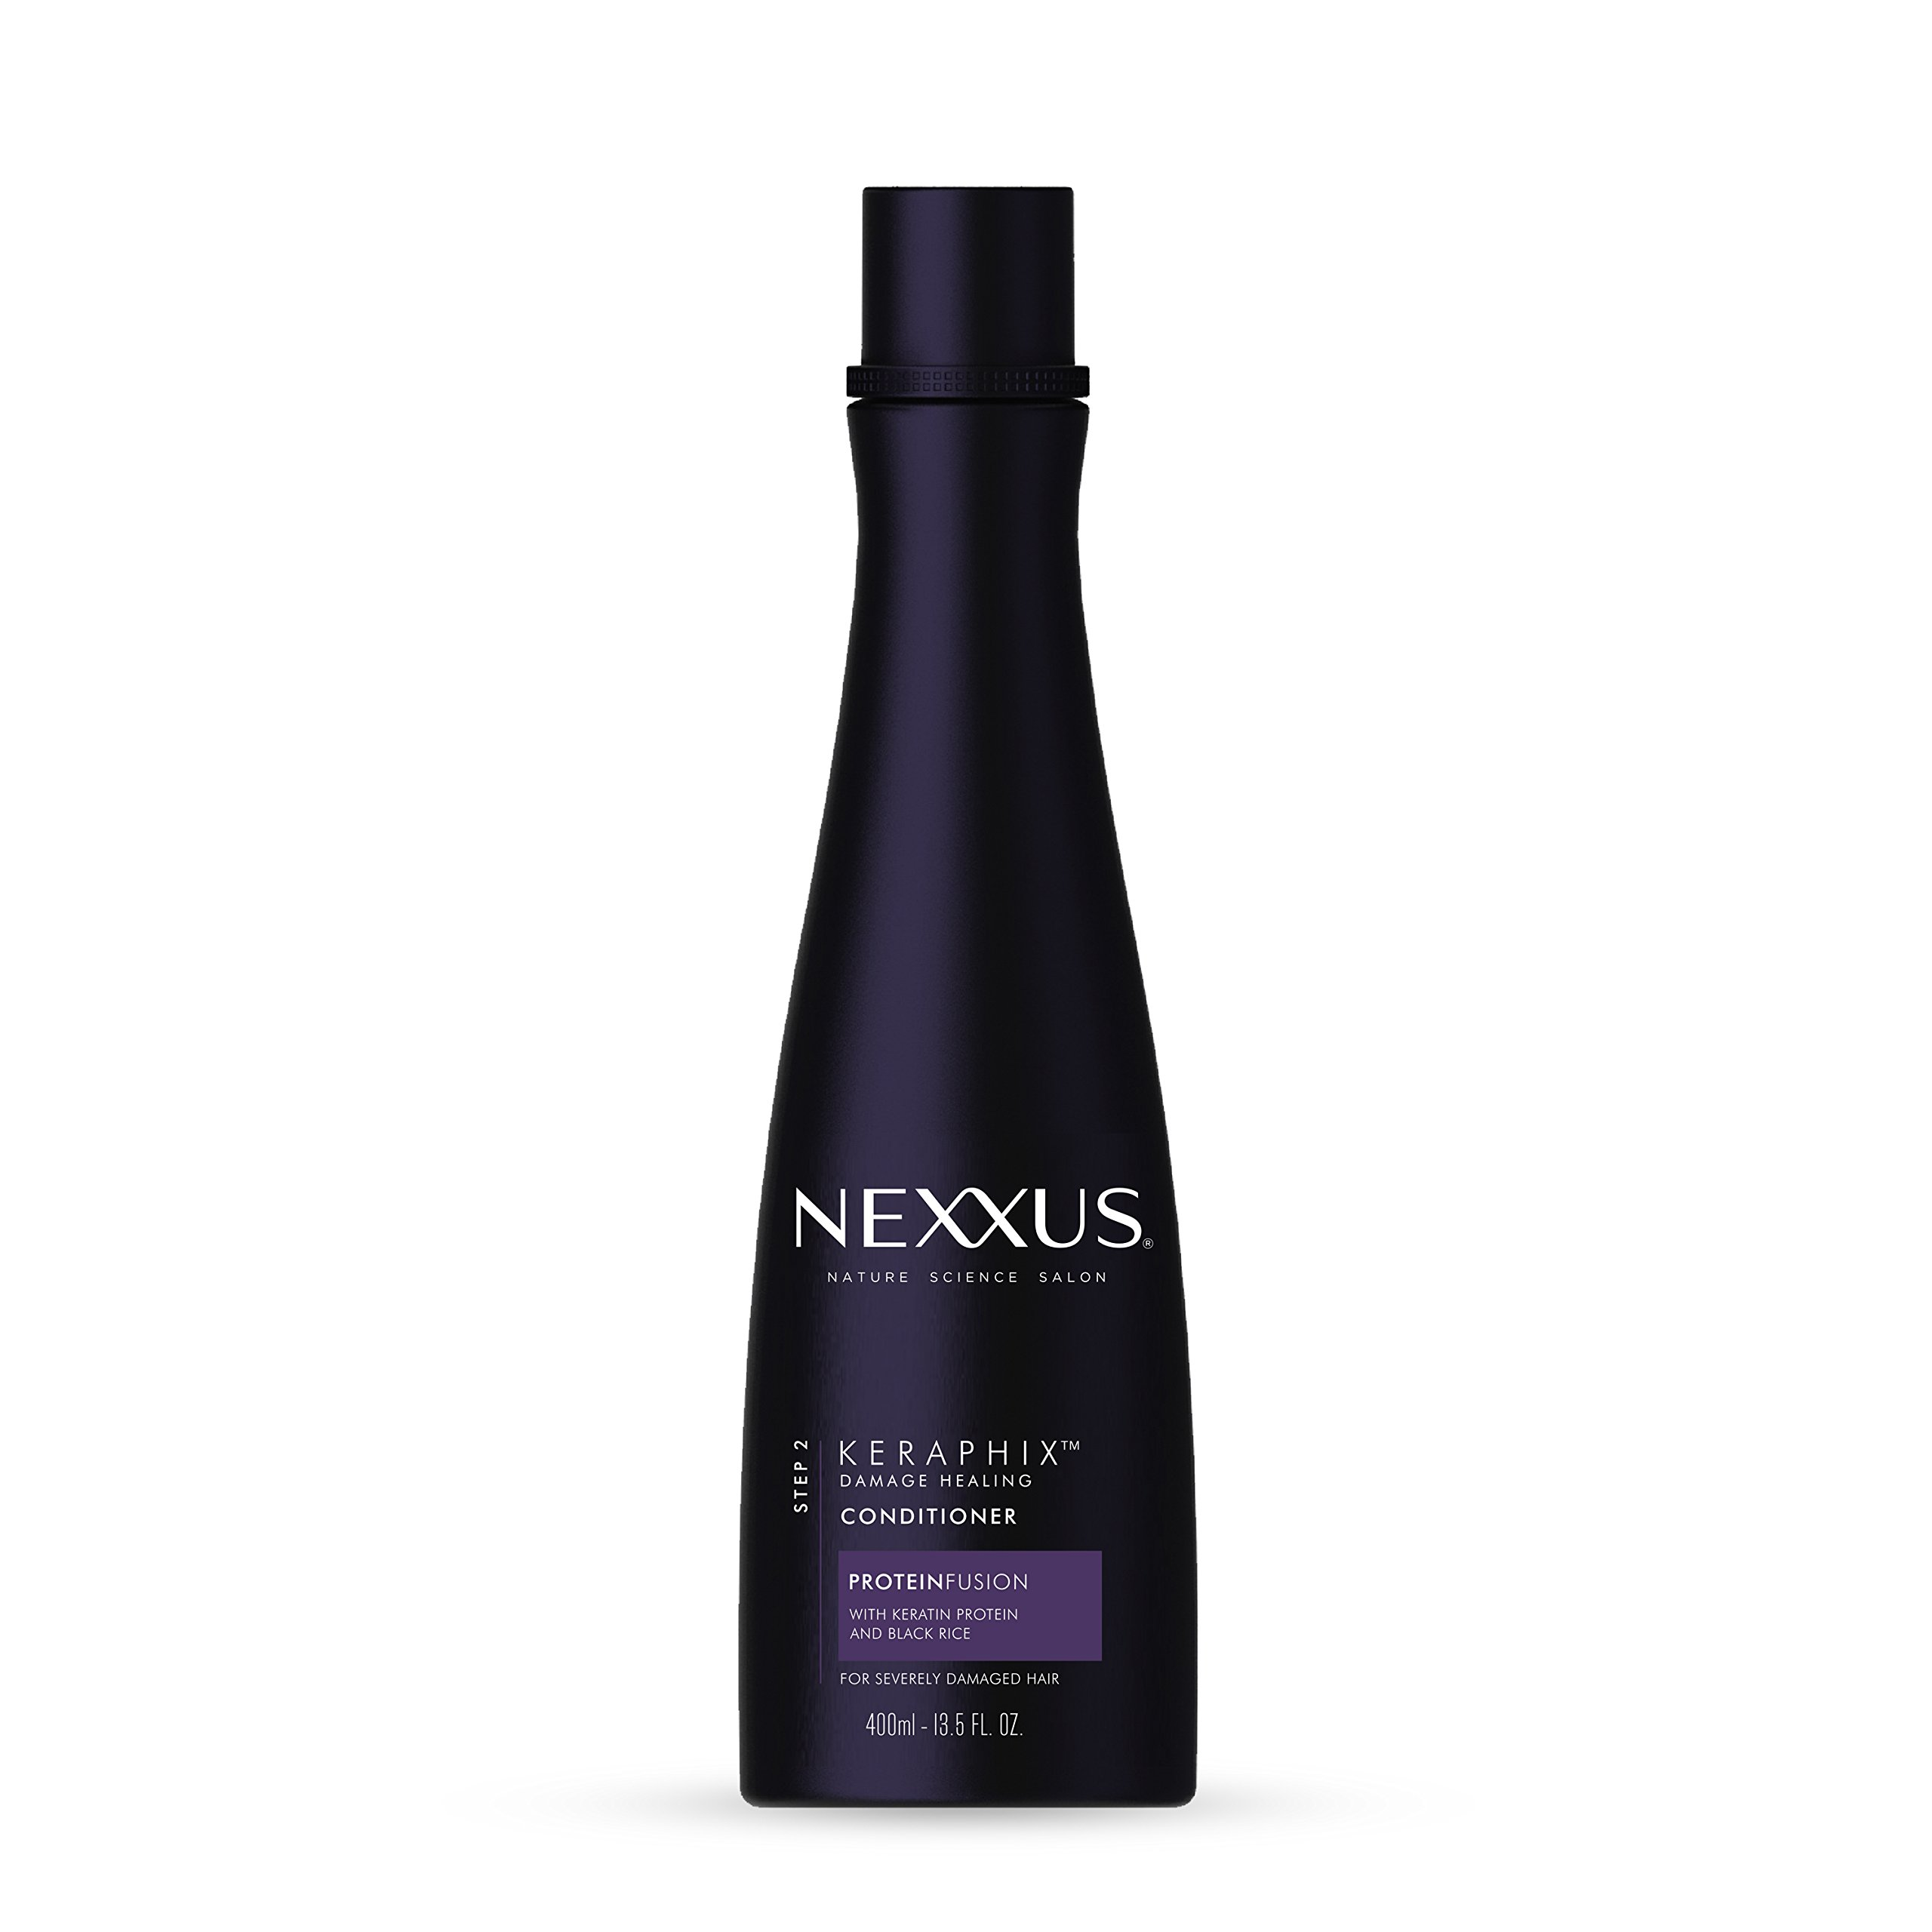 Nexxus Keraphix Conditioner, for Damaged Hair 13.5 oz